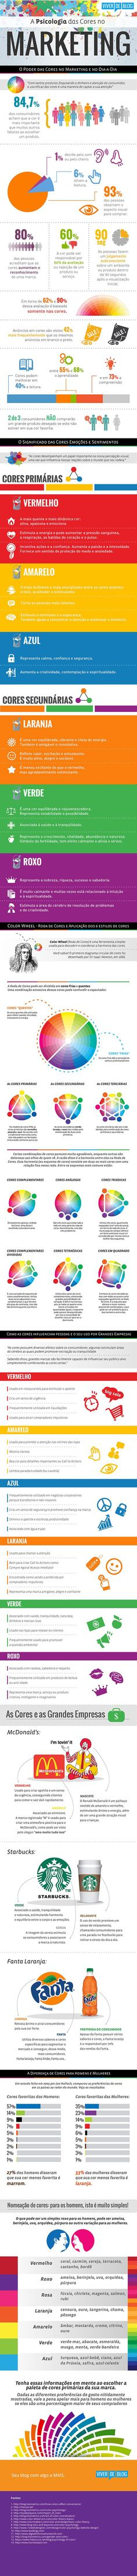 A psicologia das cores no marketing e no dia-a-dia